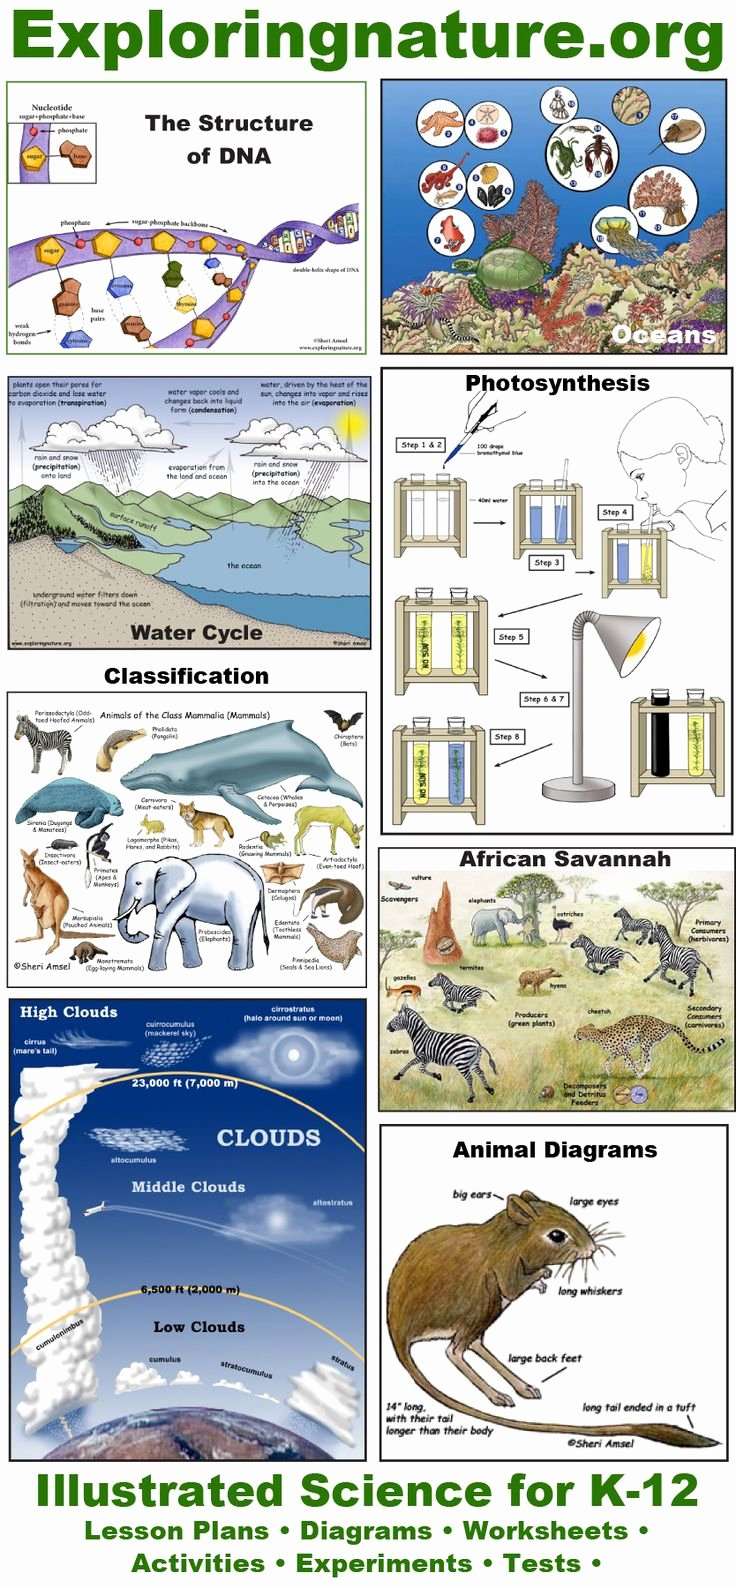 The Nature Of Science Worksheet Elegant 17 Best Images About Exploring Nature On Pinterest